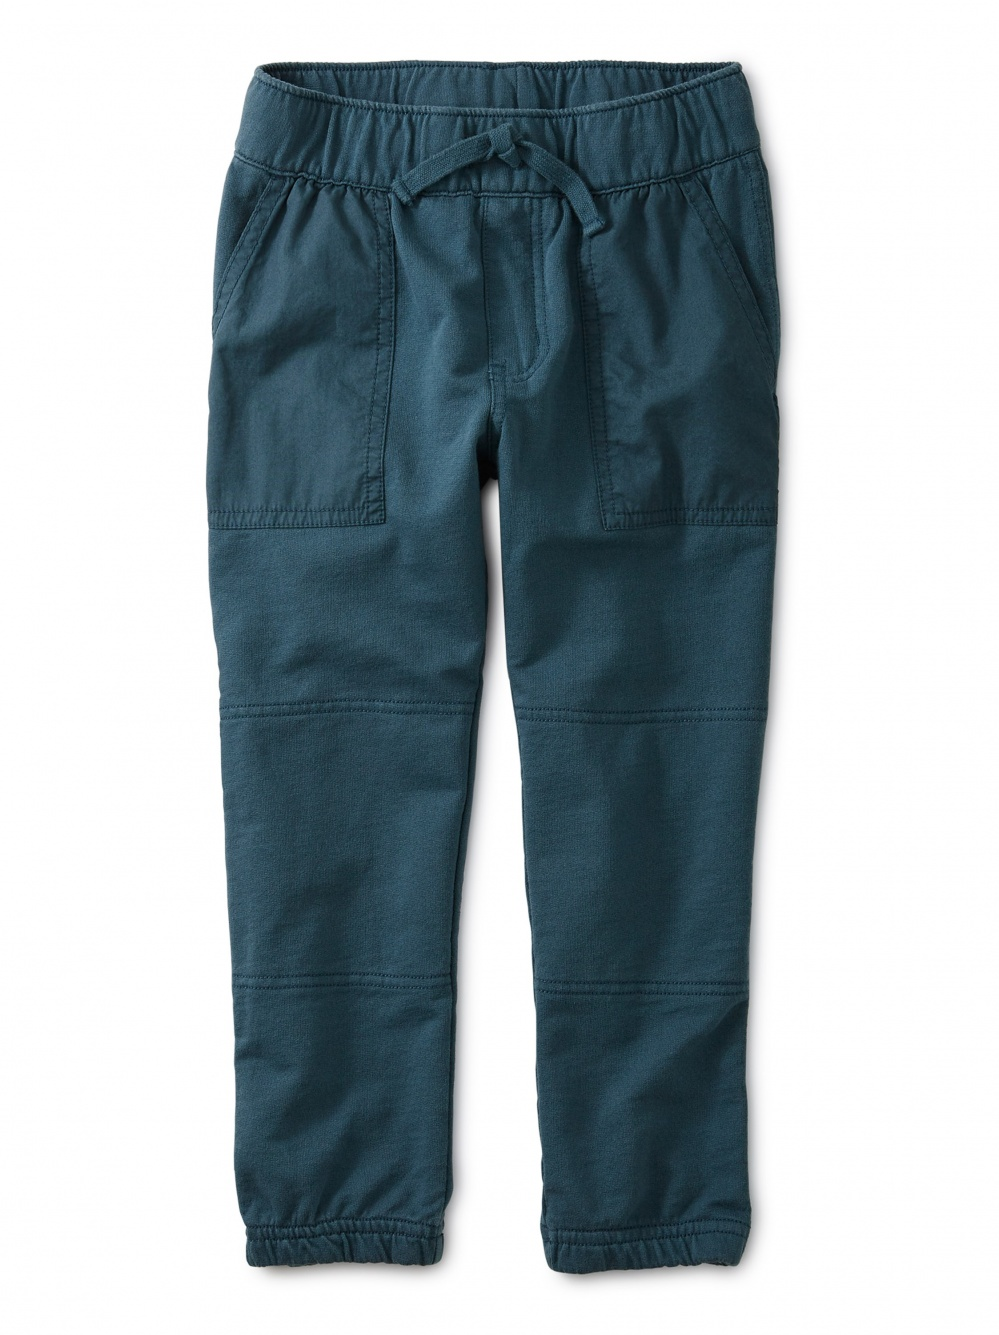 Woven Patch Pocket Joggers